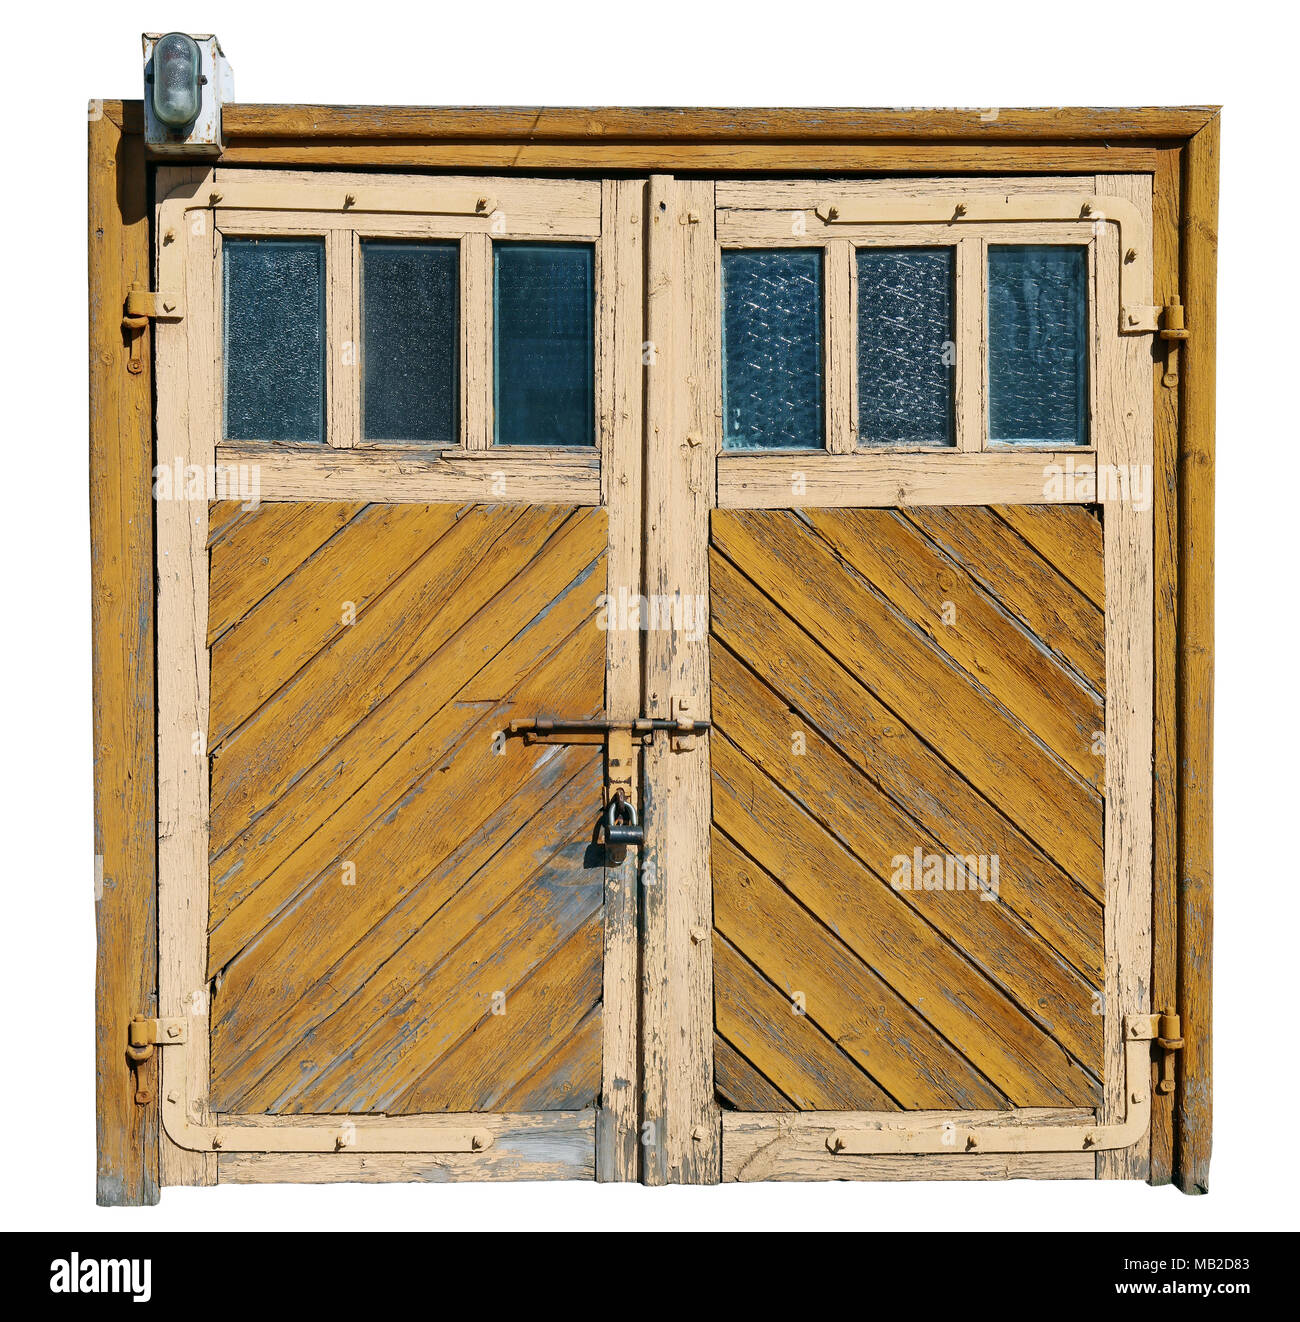 Vintage Yellow Aged Cracked Wooden Garage Doors With Glass Windows